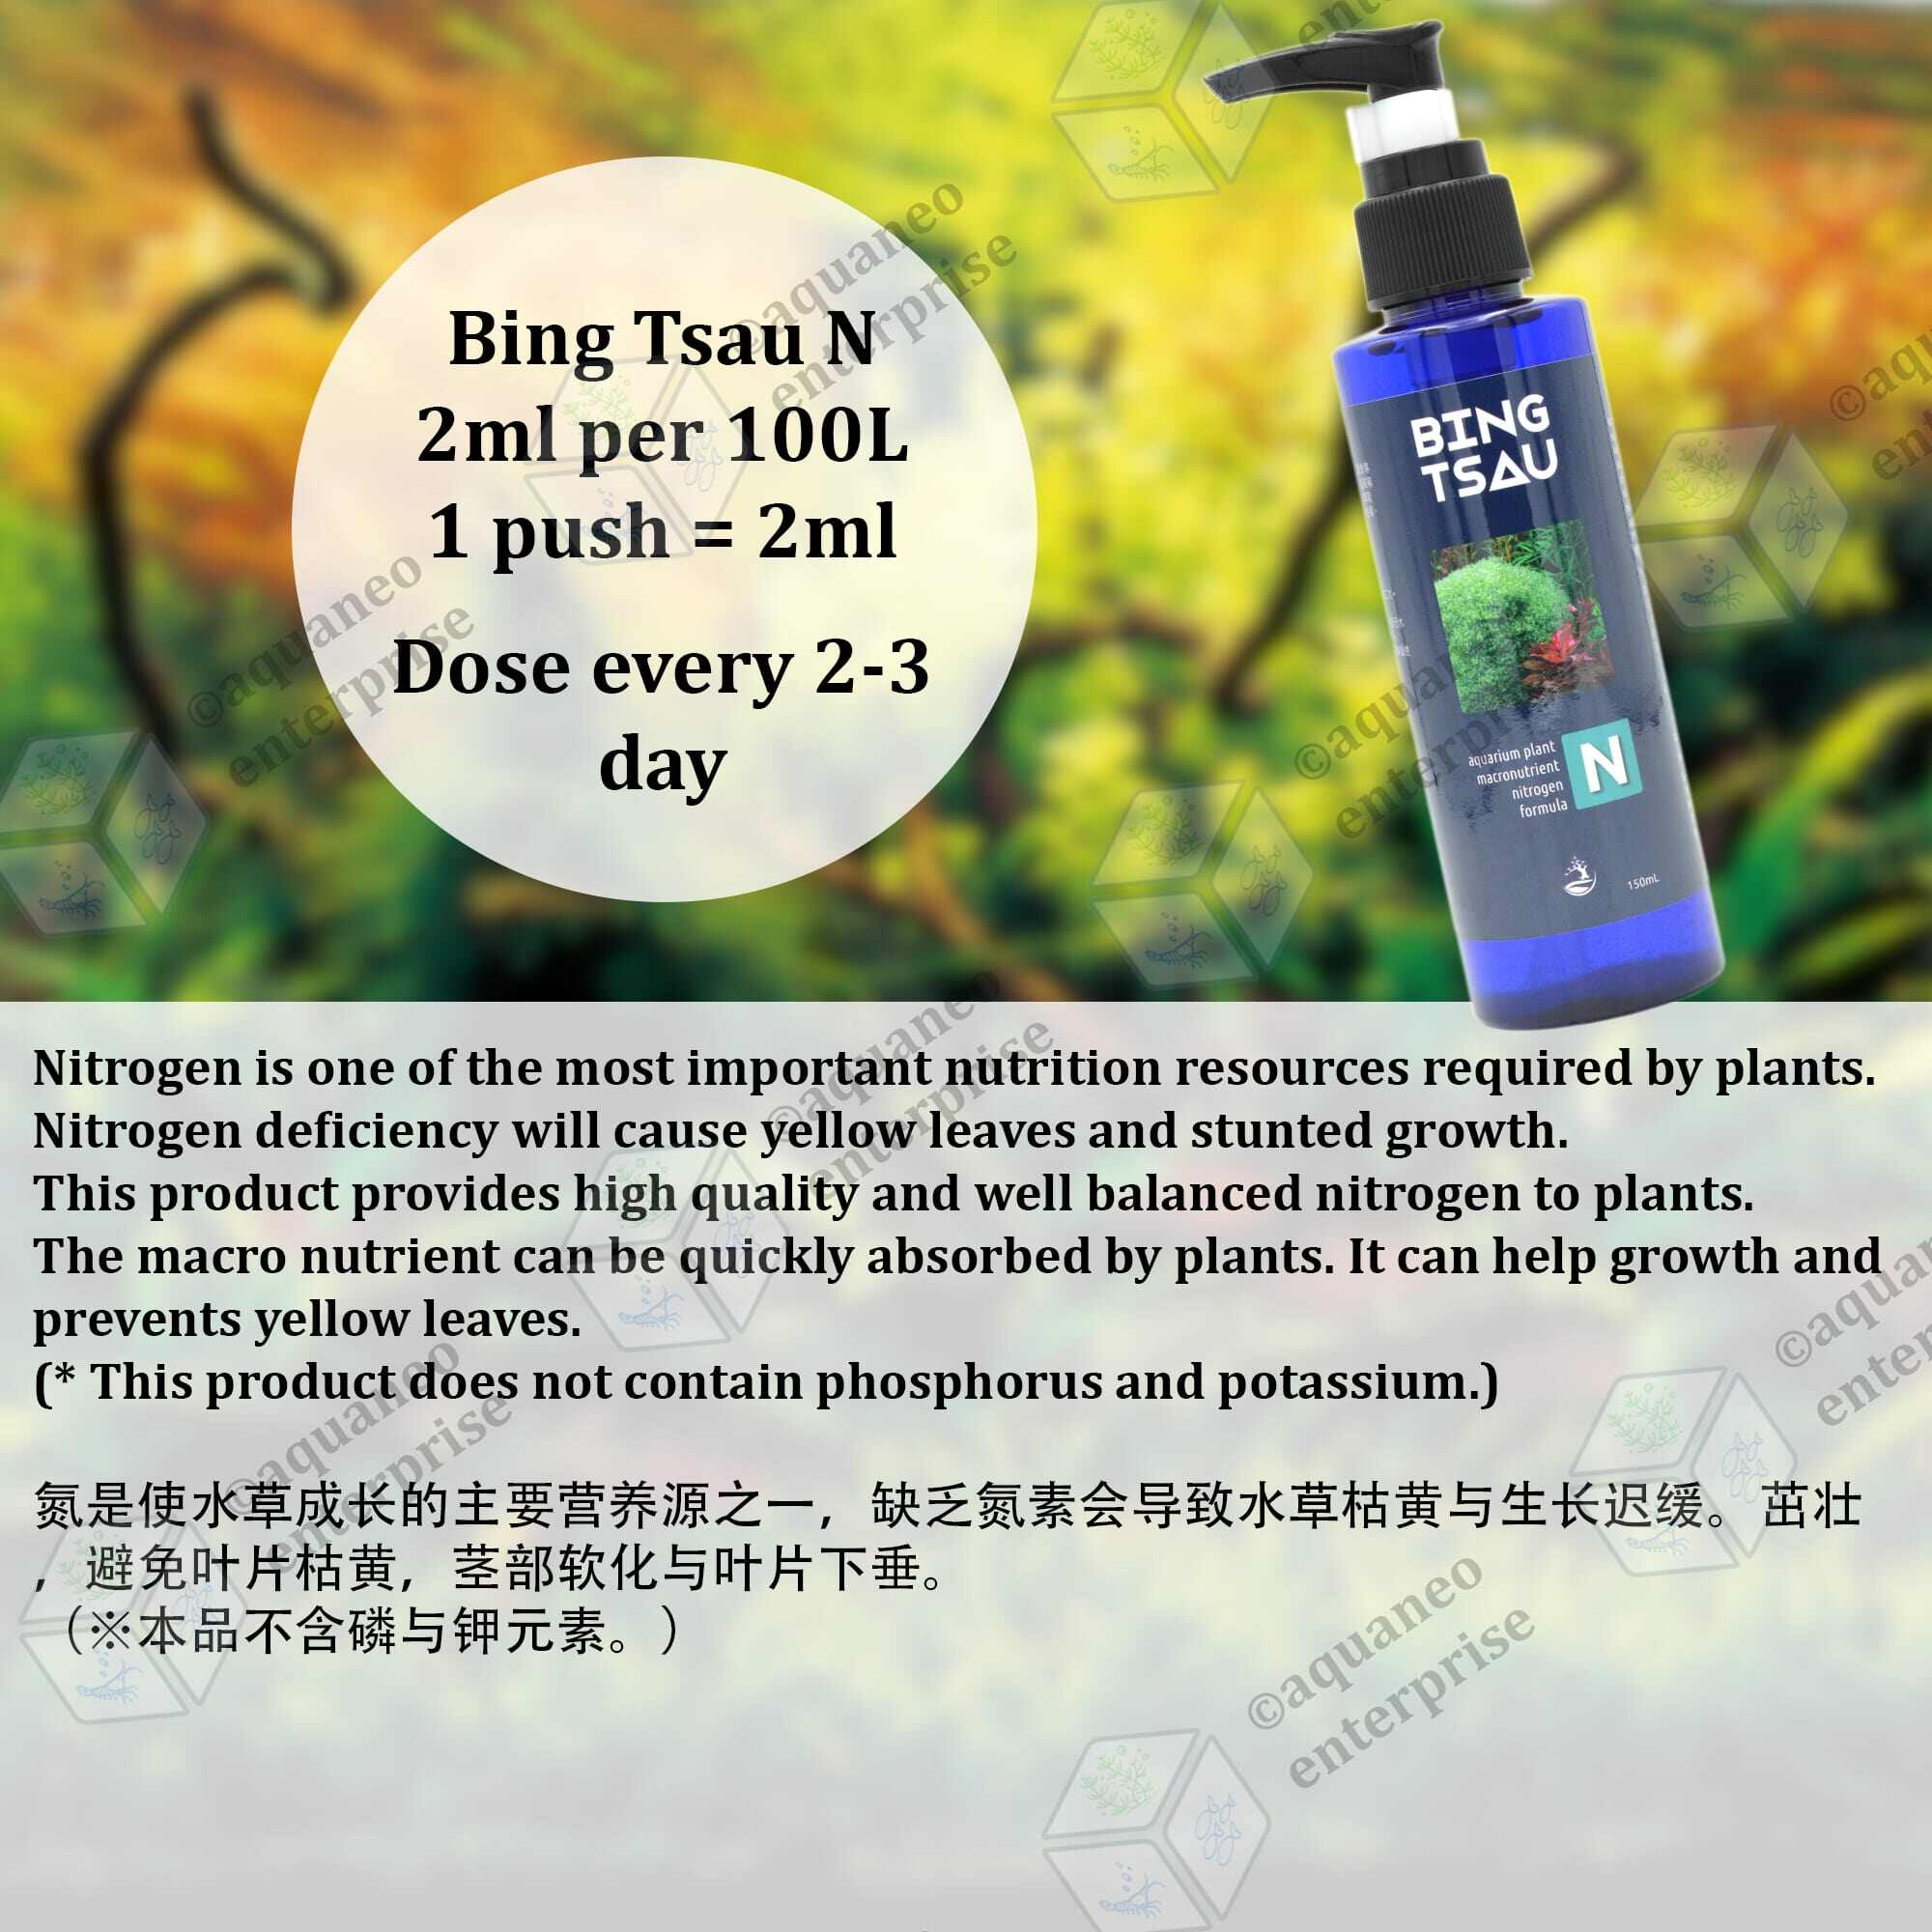 SL Aqua Plant Fertilizer Nitrogen Bing Tsau N 500ml